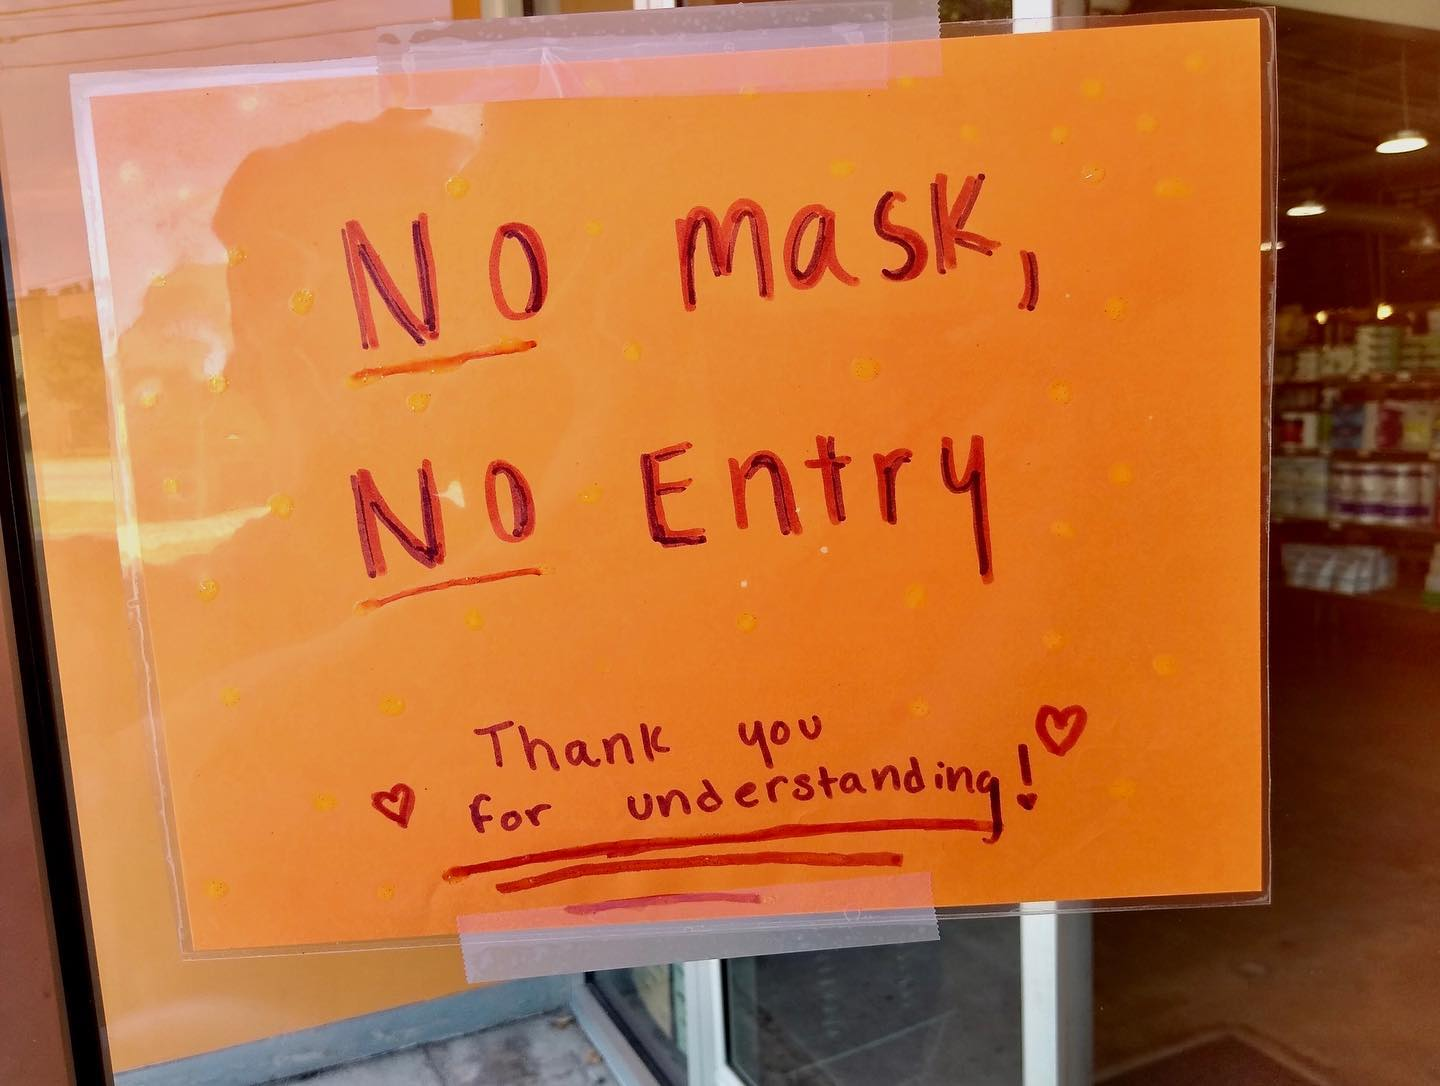 """A handwritten sign on orange paper that says """"No Mask, No Entry. Thank you for your understanding <3"""""""